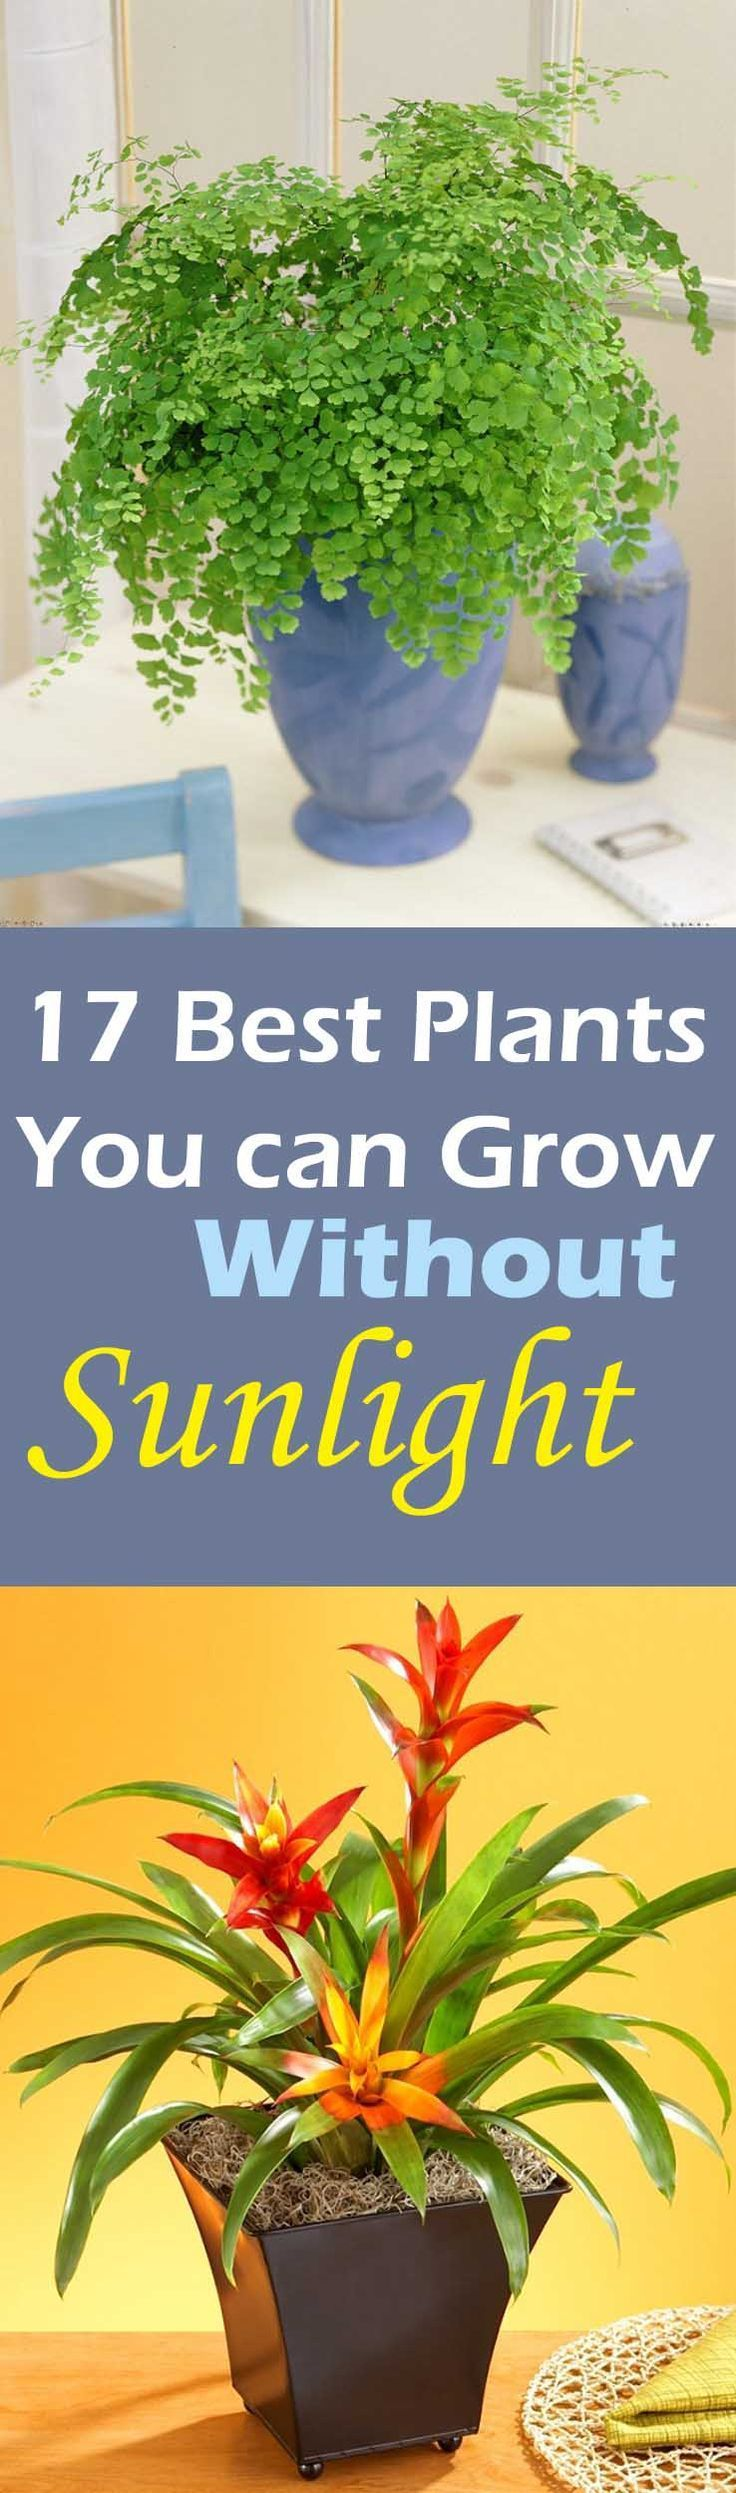 Best Plants to Grow Indoors without Sunlight Sunlight Plants